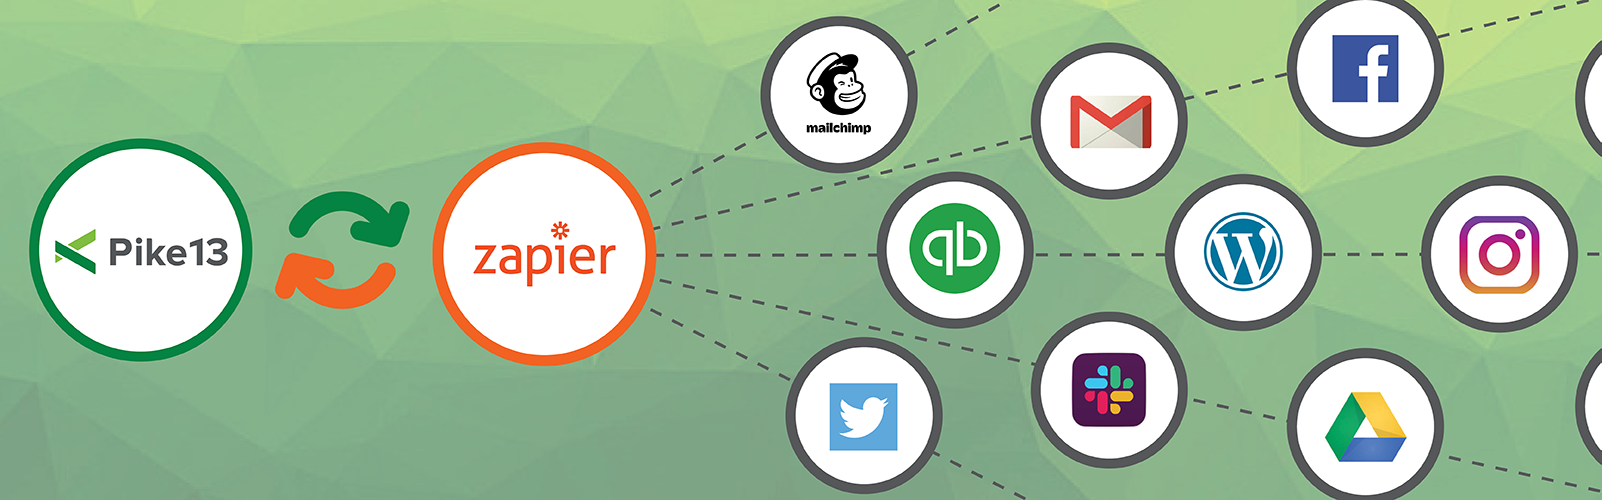 p13-zapier-integration-web-banner